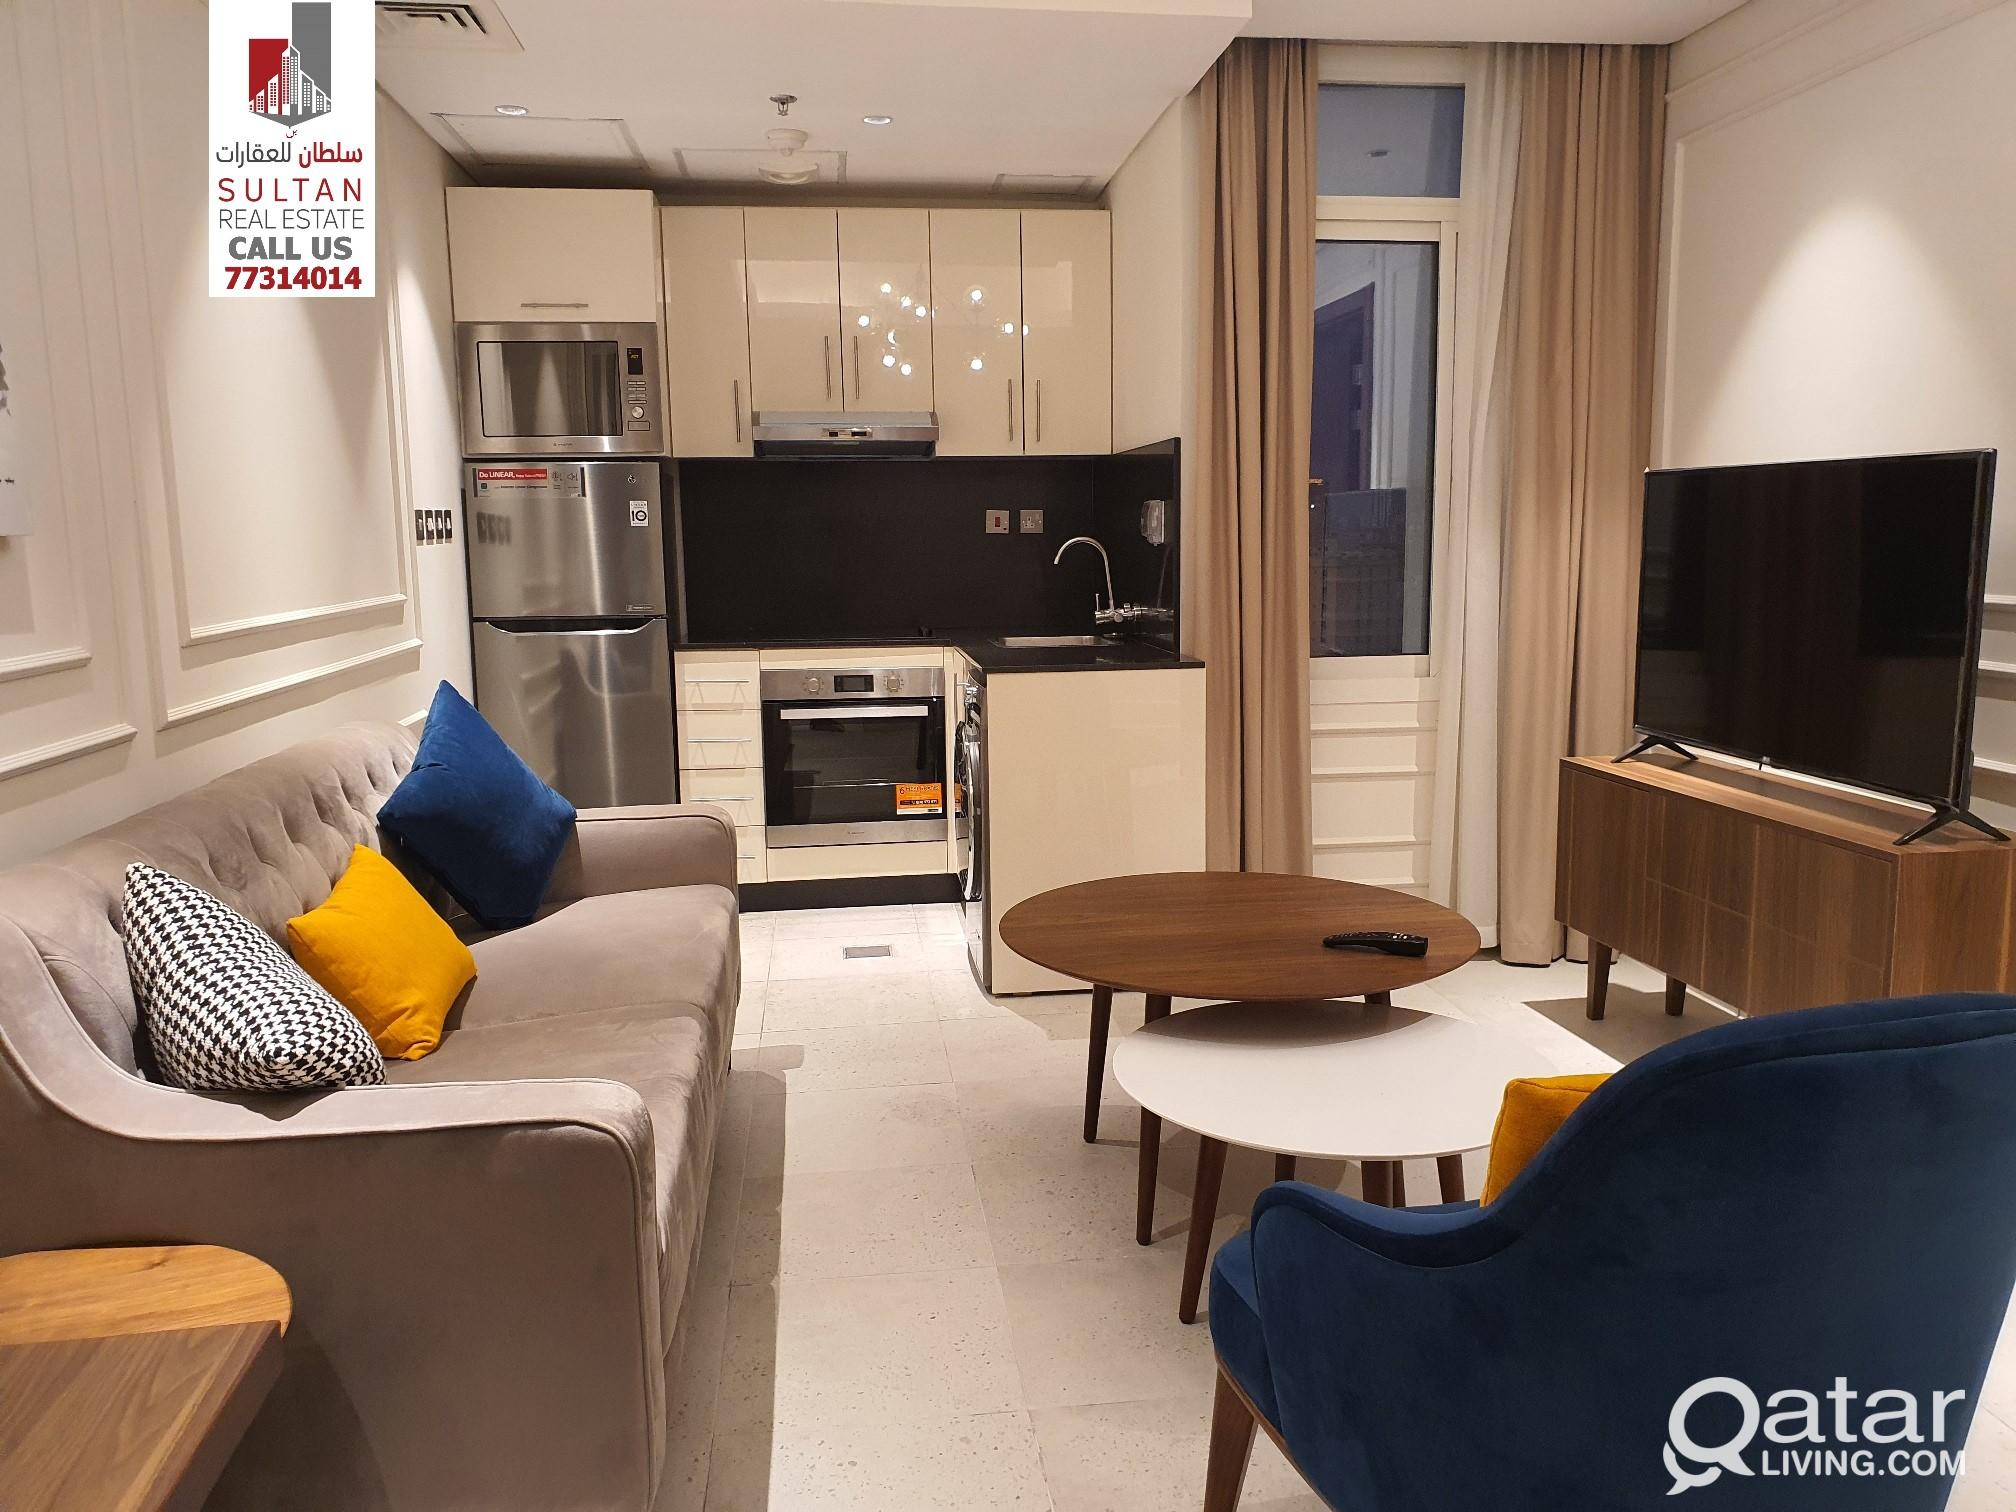 Furnished 1 BHK + 1 month free